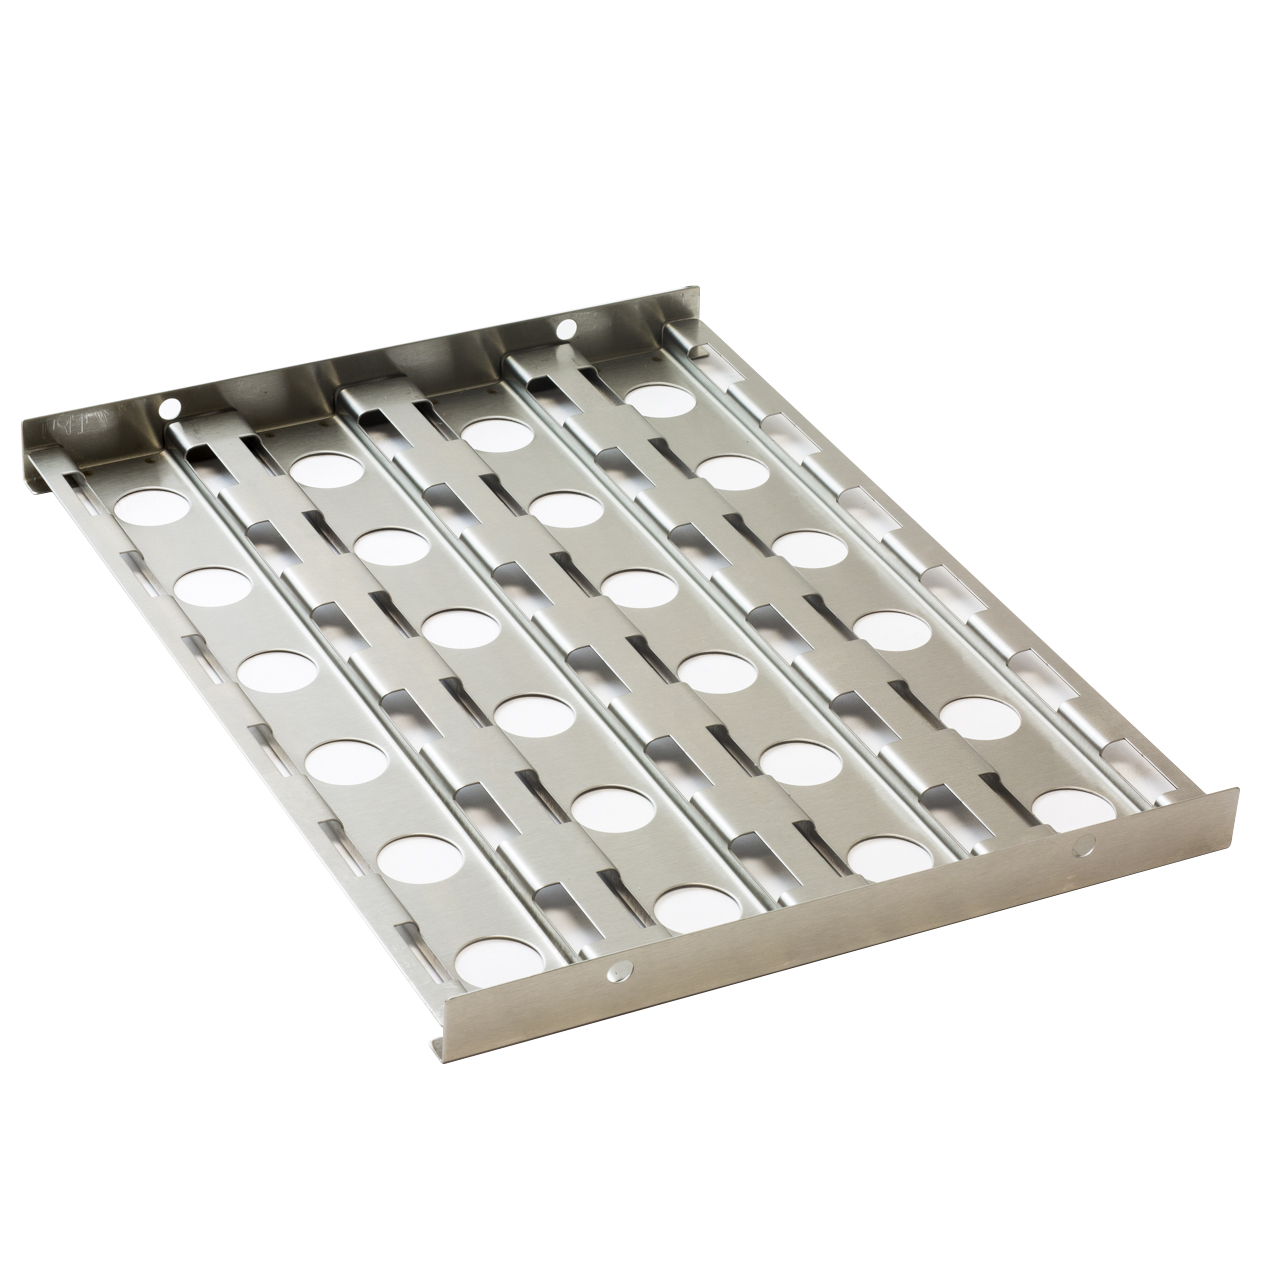 Grill Tray Large Briquette Tray For Summerset Alturi Gas Grill